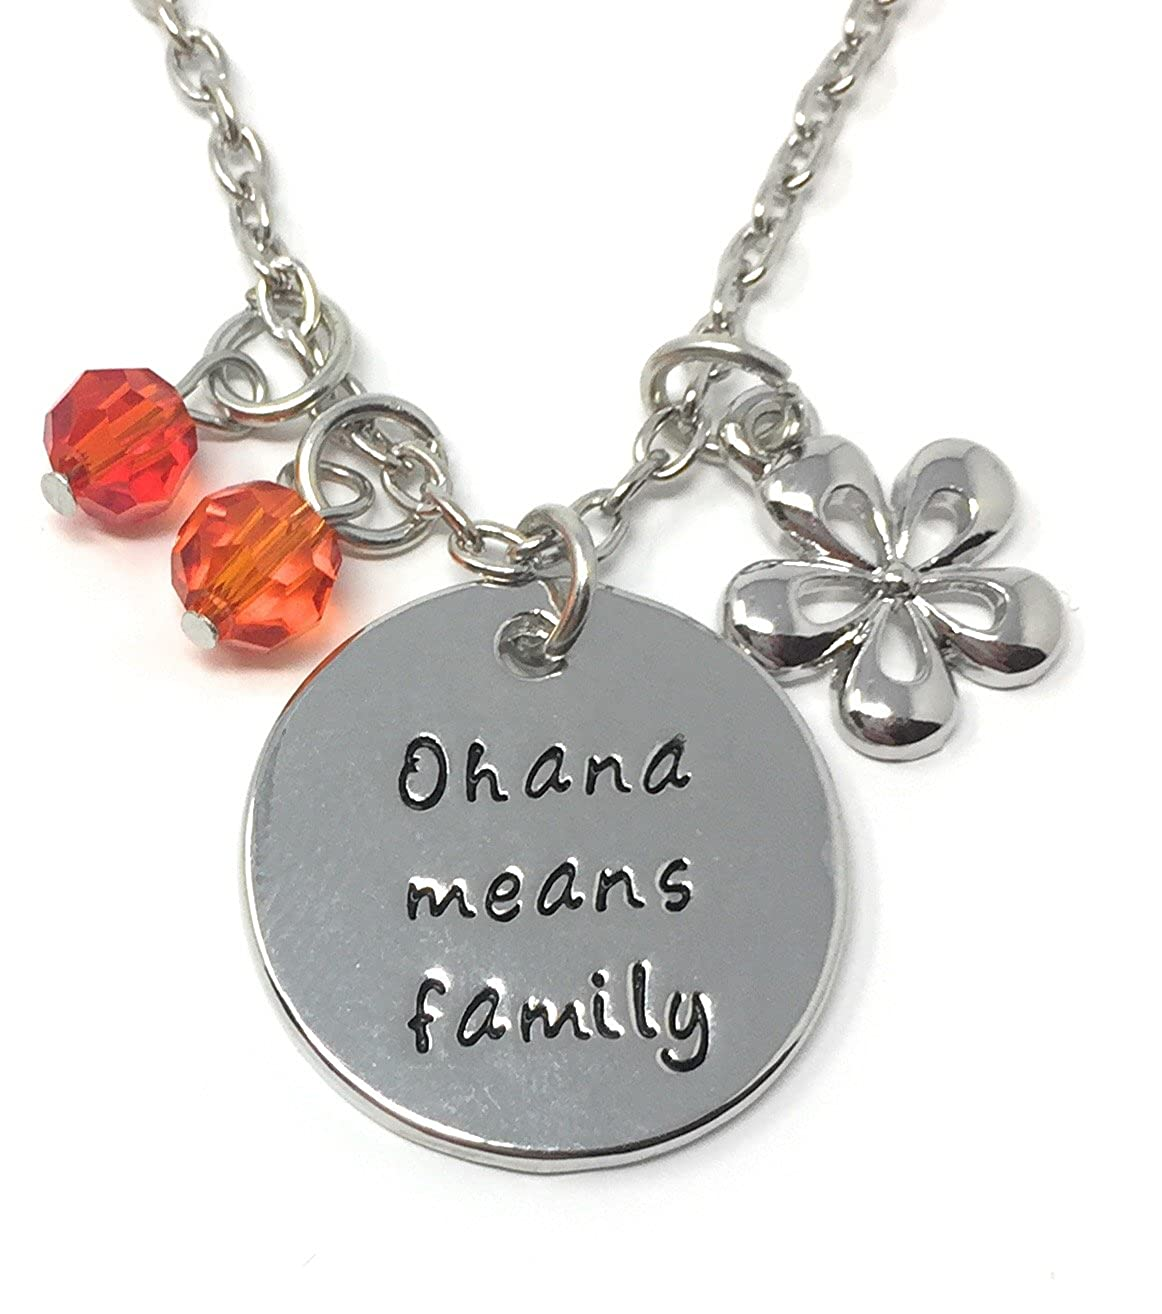 Silver-Tone 'Ohana Means Family' Engraved Pendant Necklace 2.5cm Diamater with 18 inch Chain Lilo and Stitch Cadoline 285